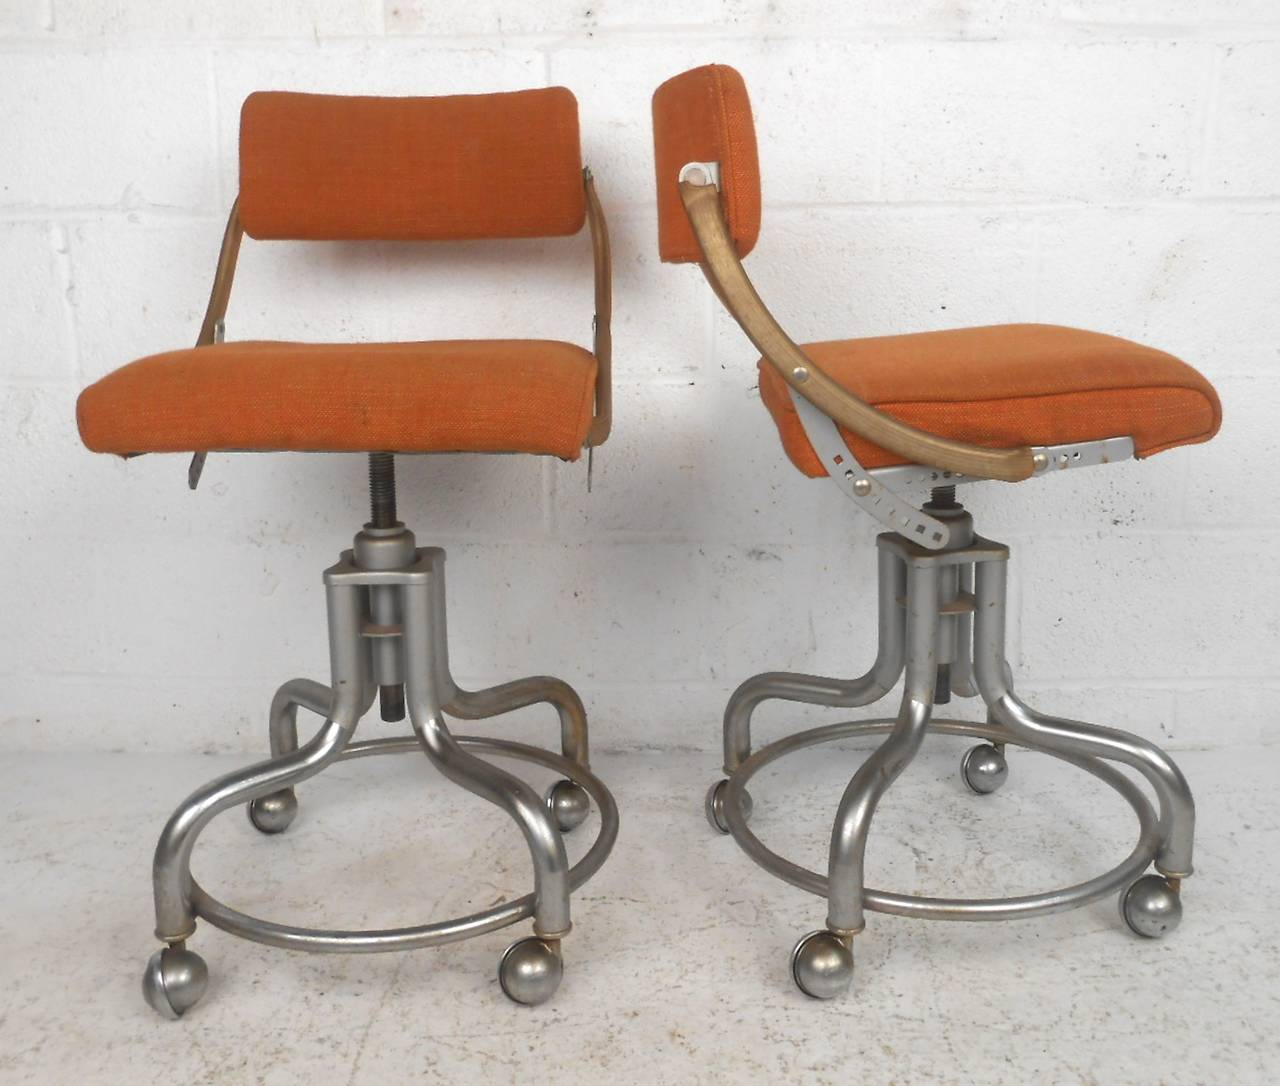 Pair Of Midcentury Rolling Chairs By Domore At 1stdibs